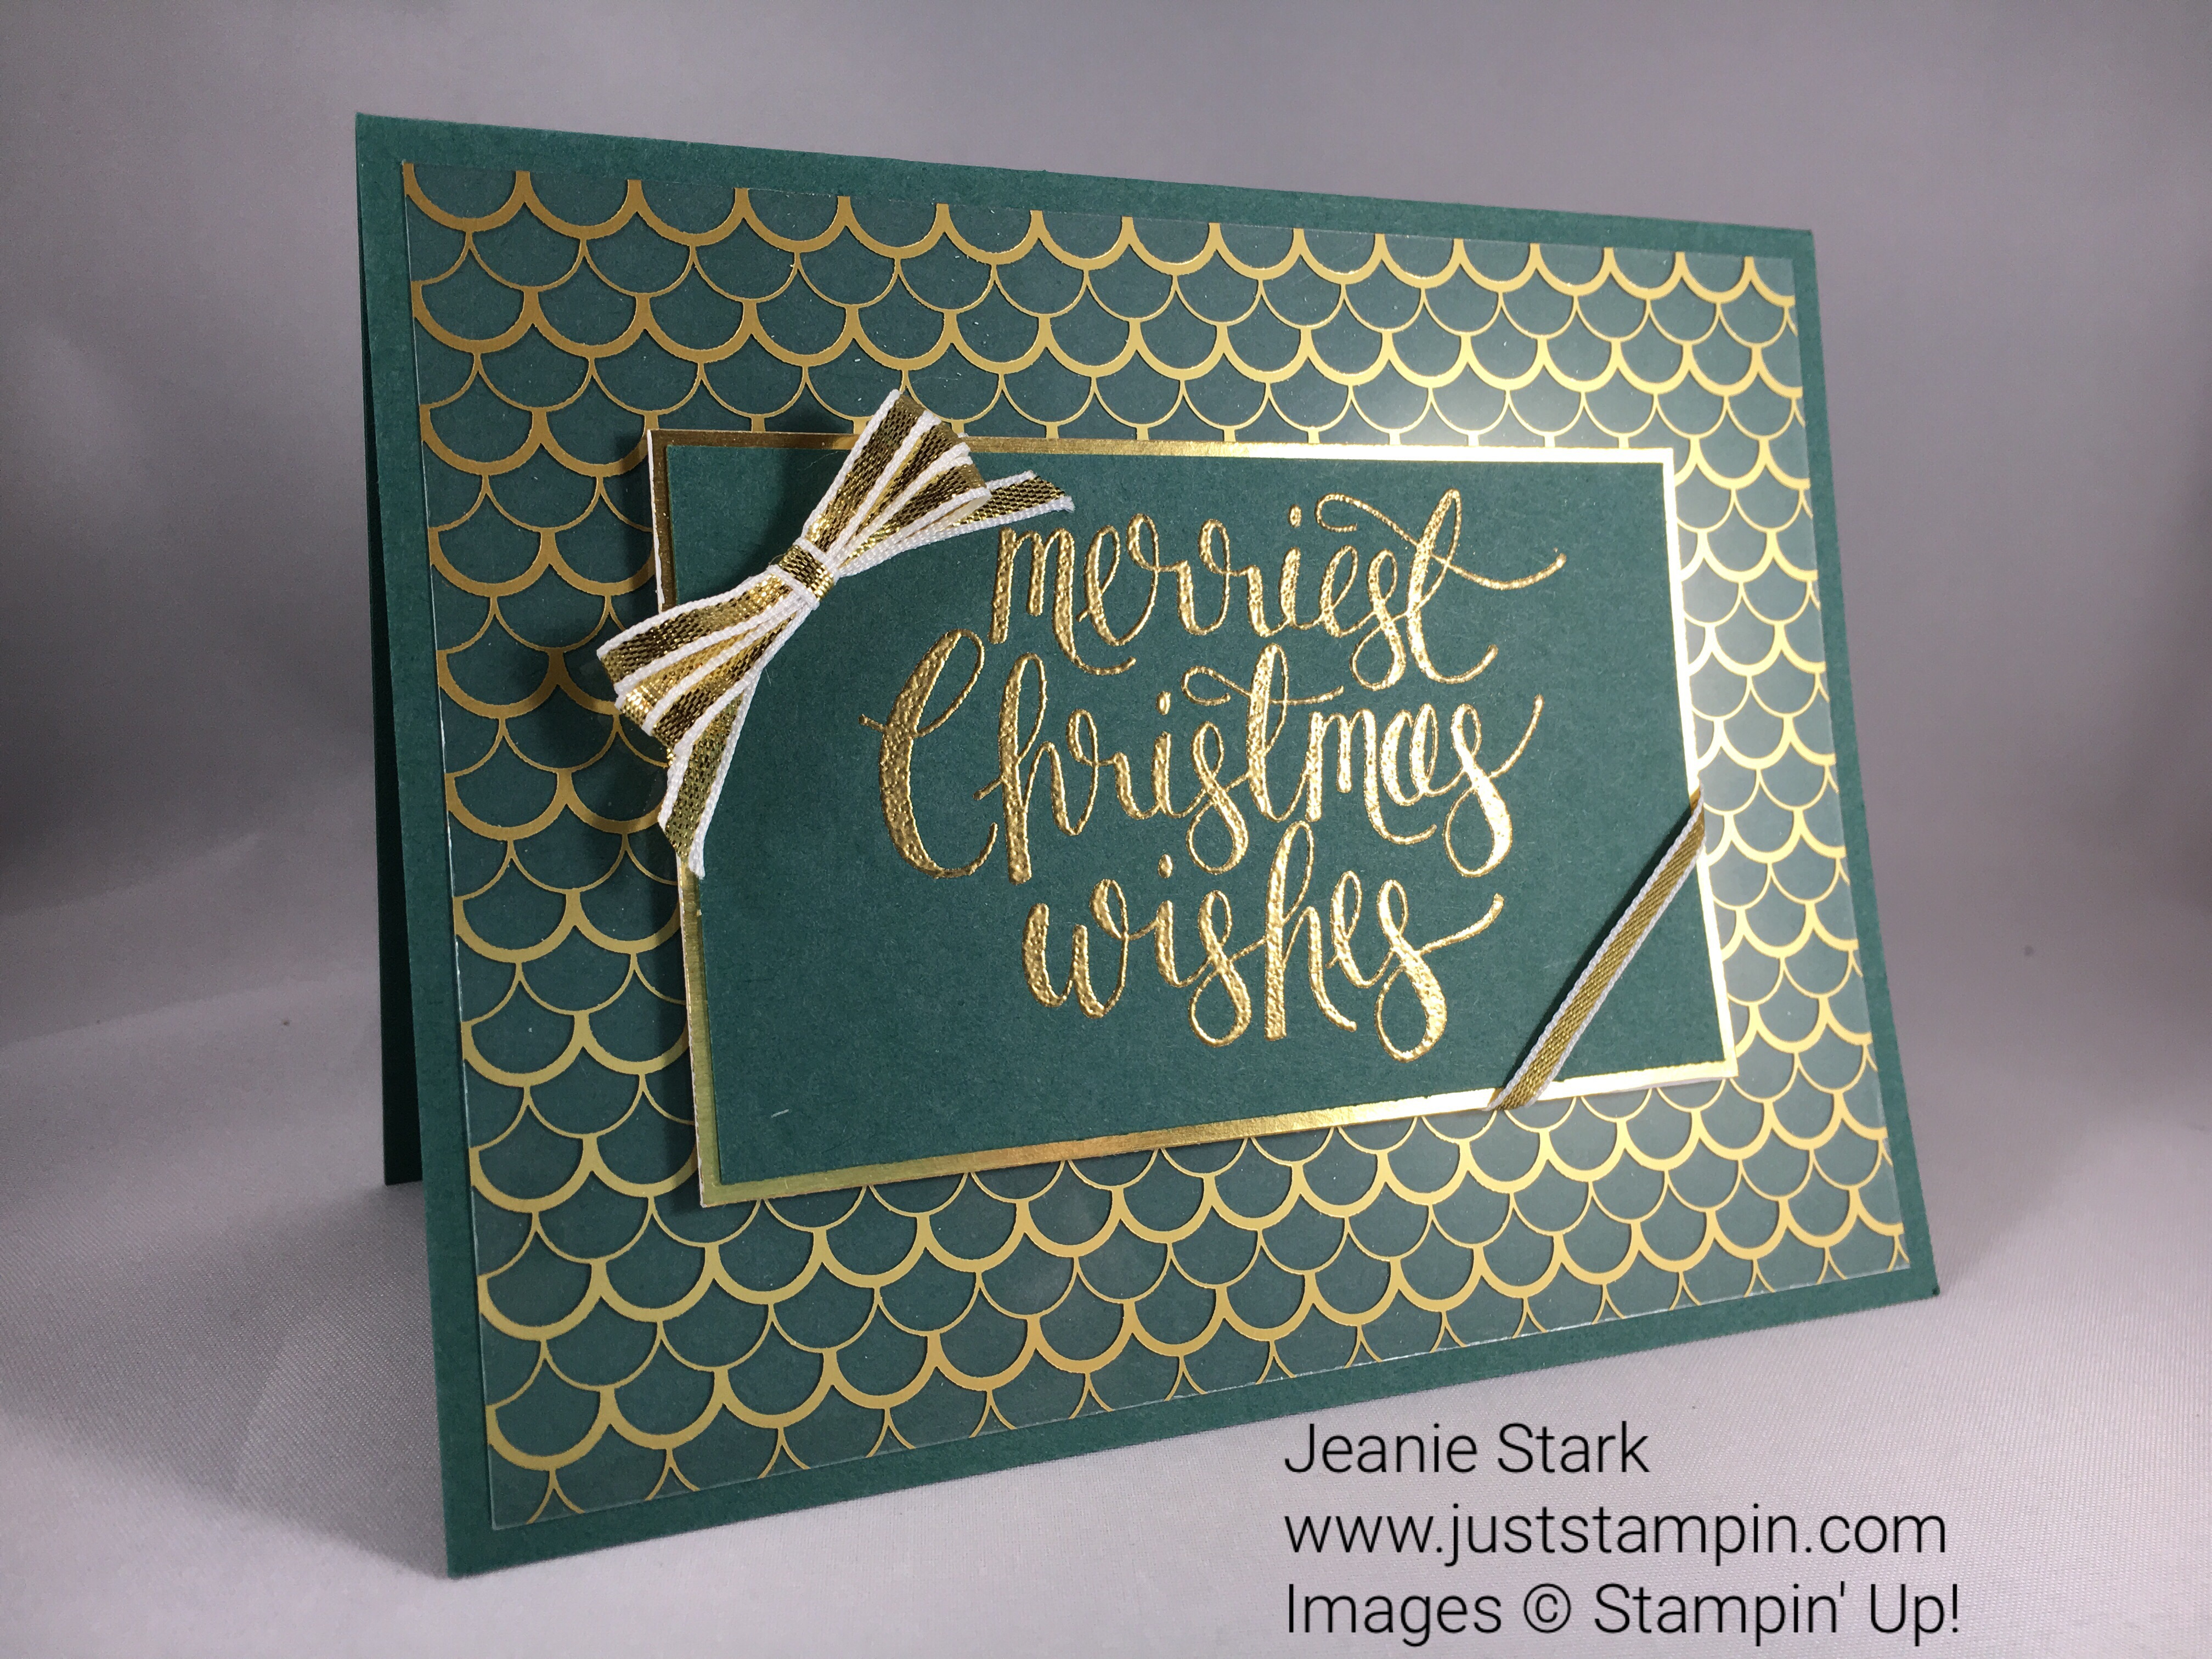 2017-2018 Annual Catalog | Just Stampin'